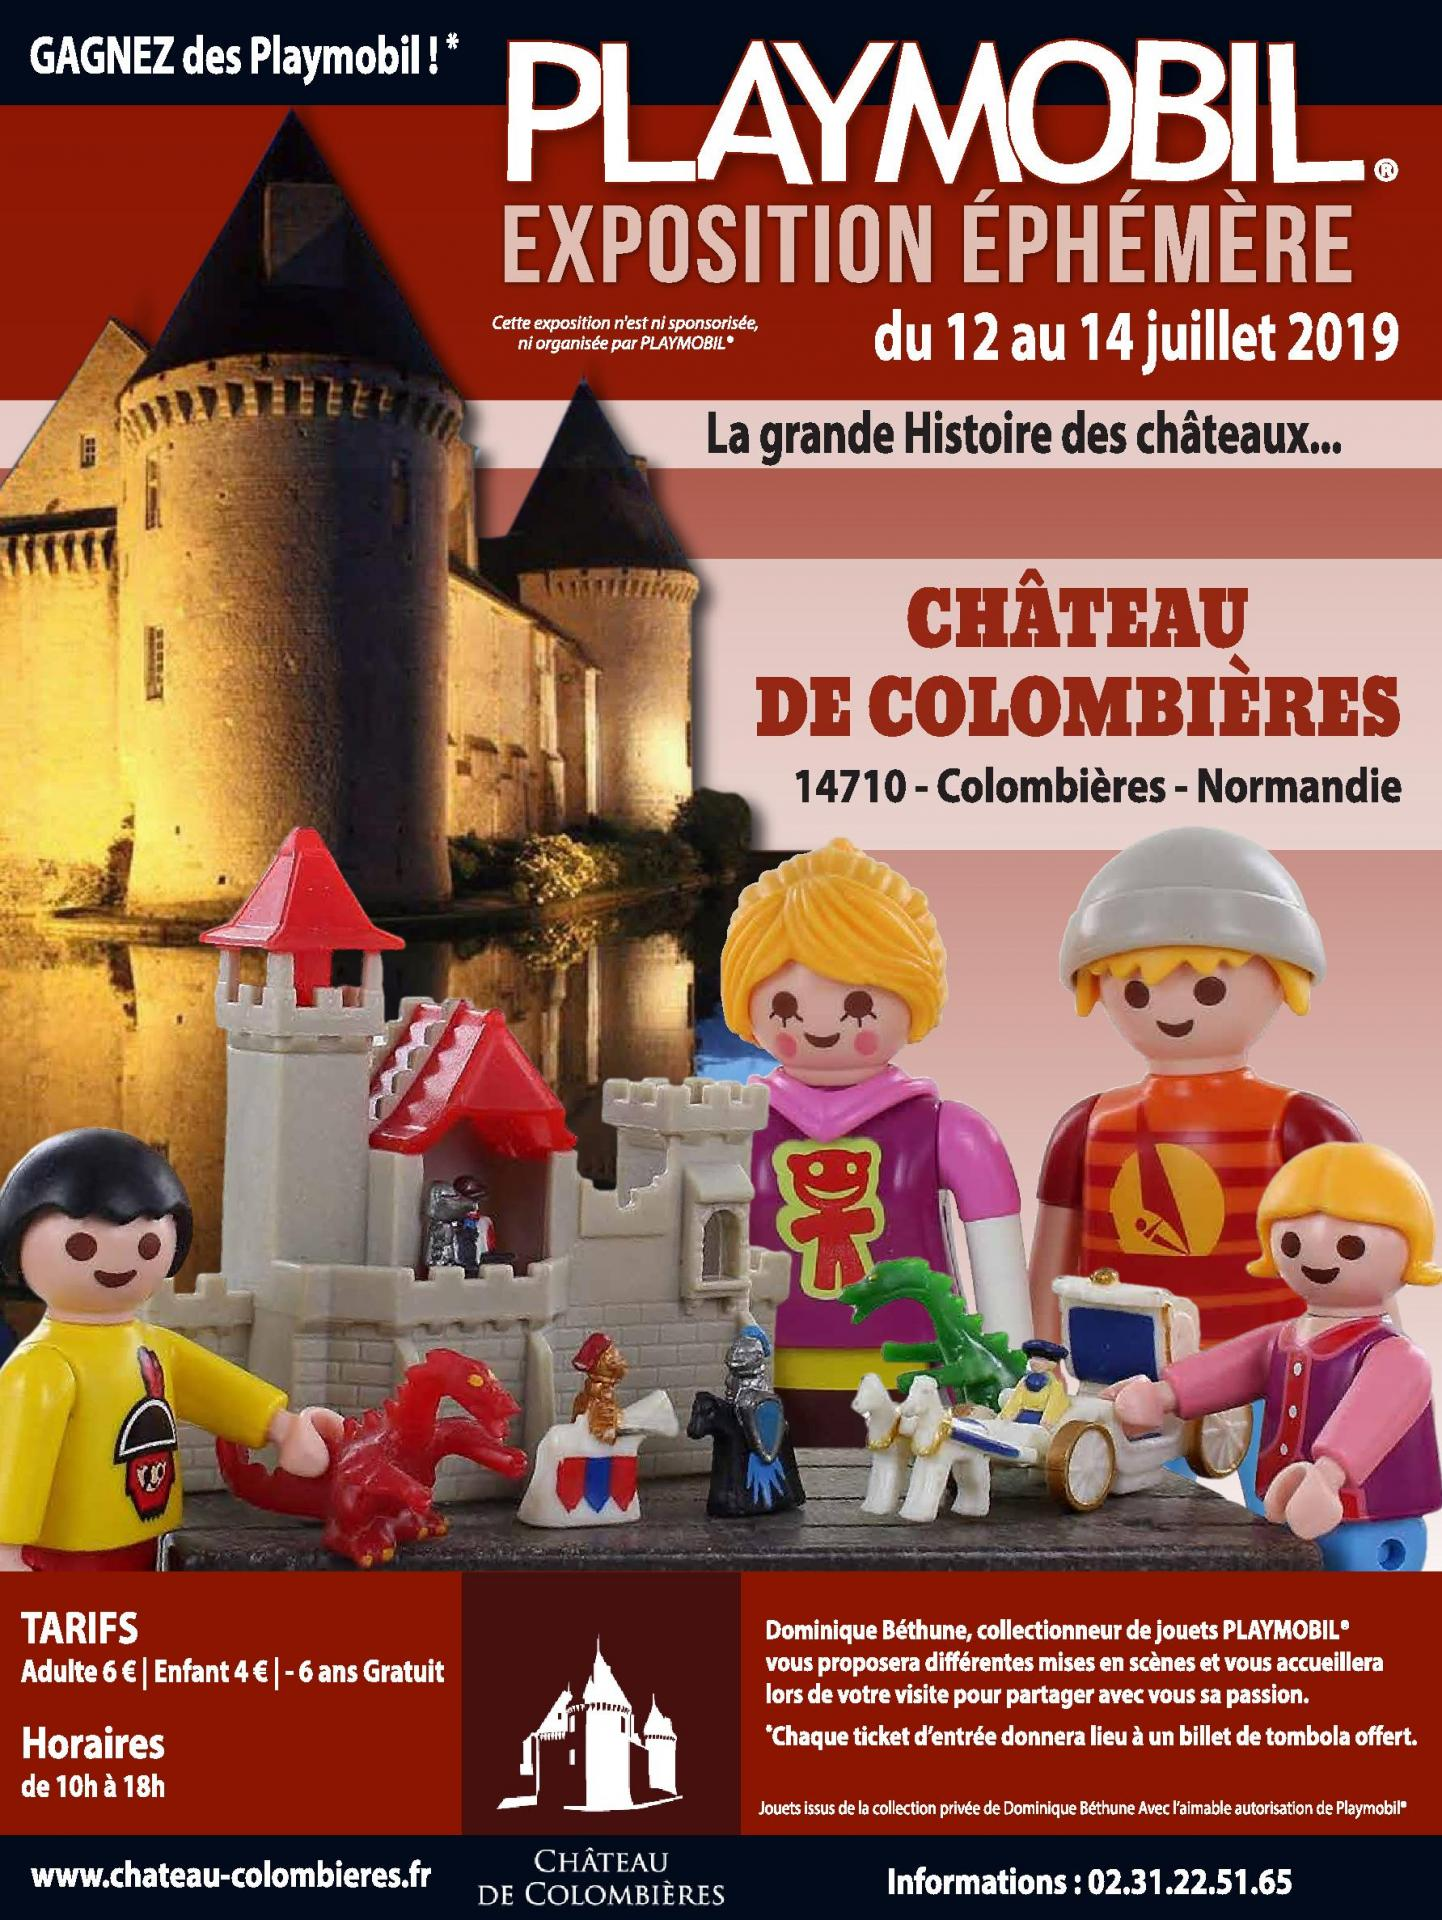 Exposition plaympobil chateau de colombieres 2019 dominique bethune